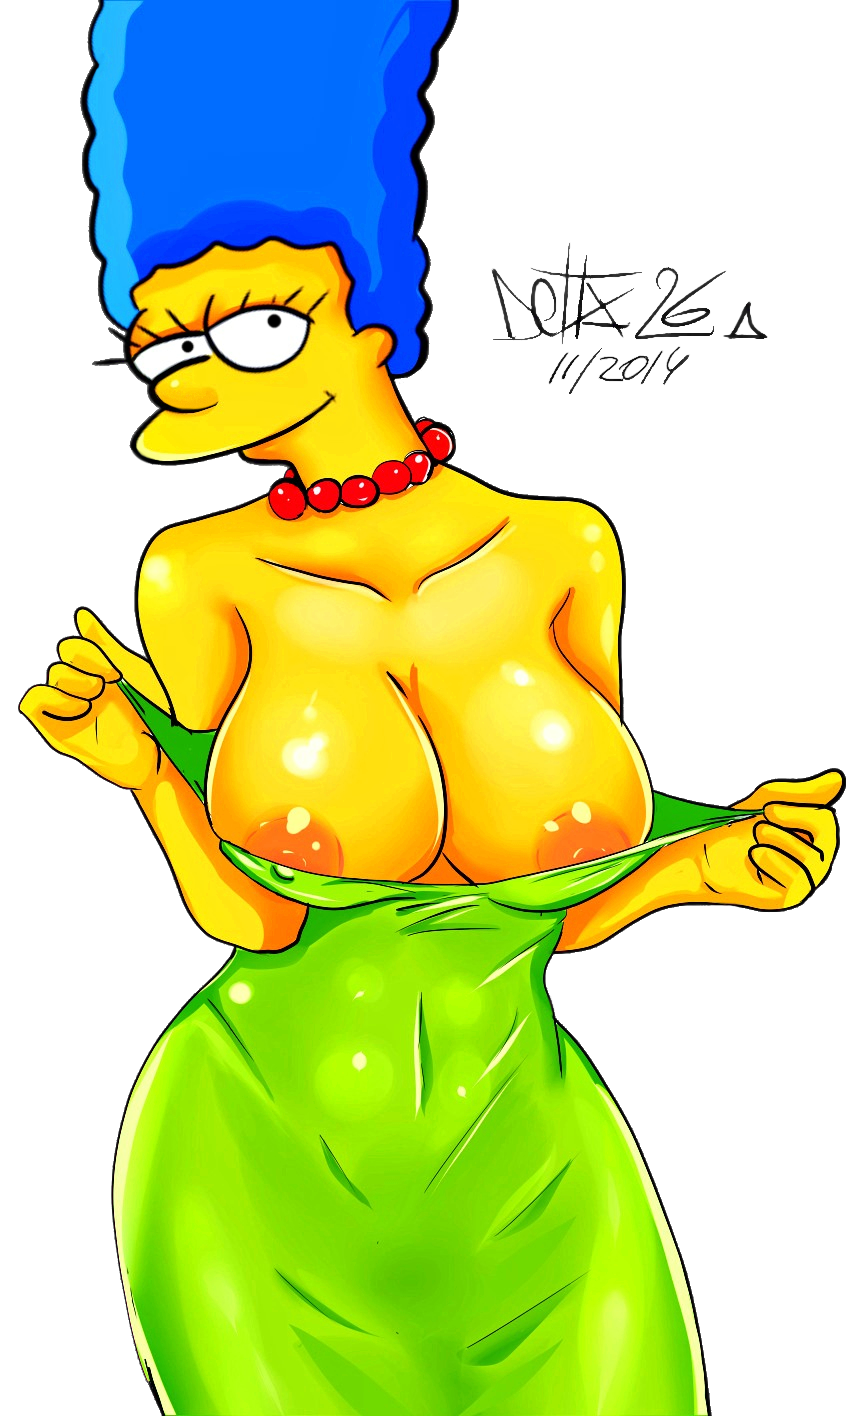 Shame! free xxx flash movies the simpsons join